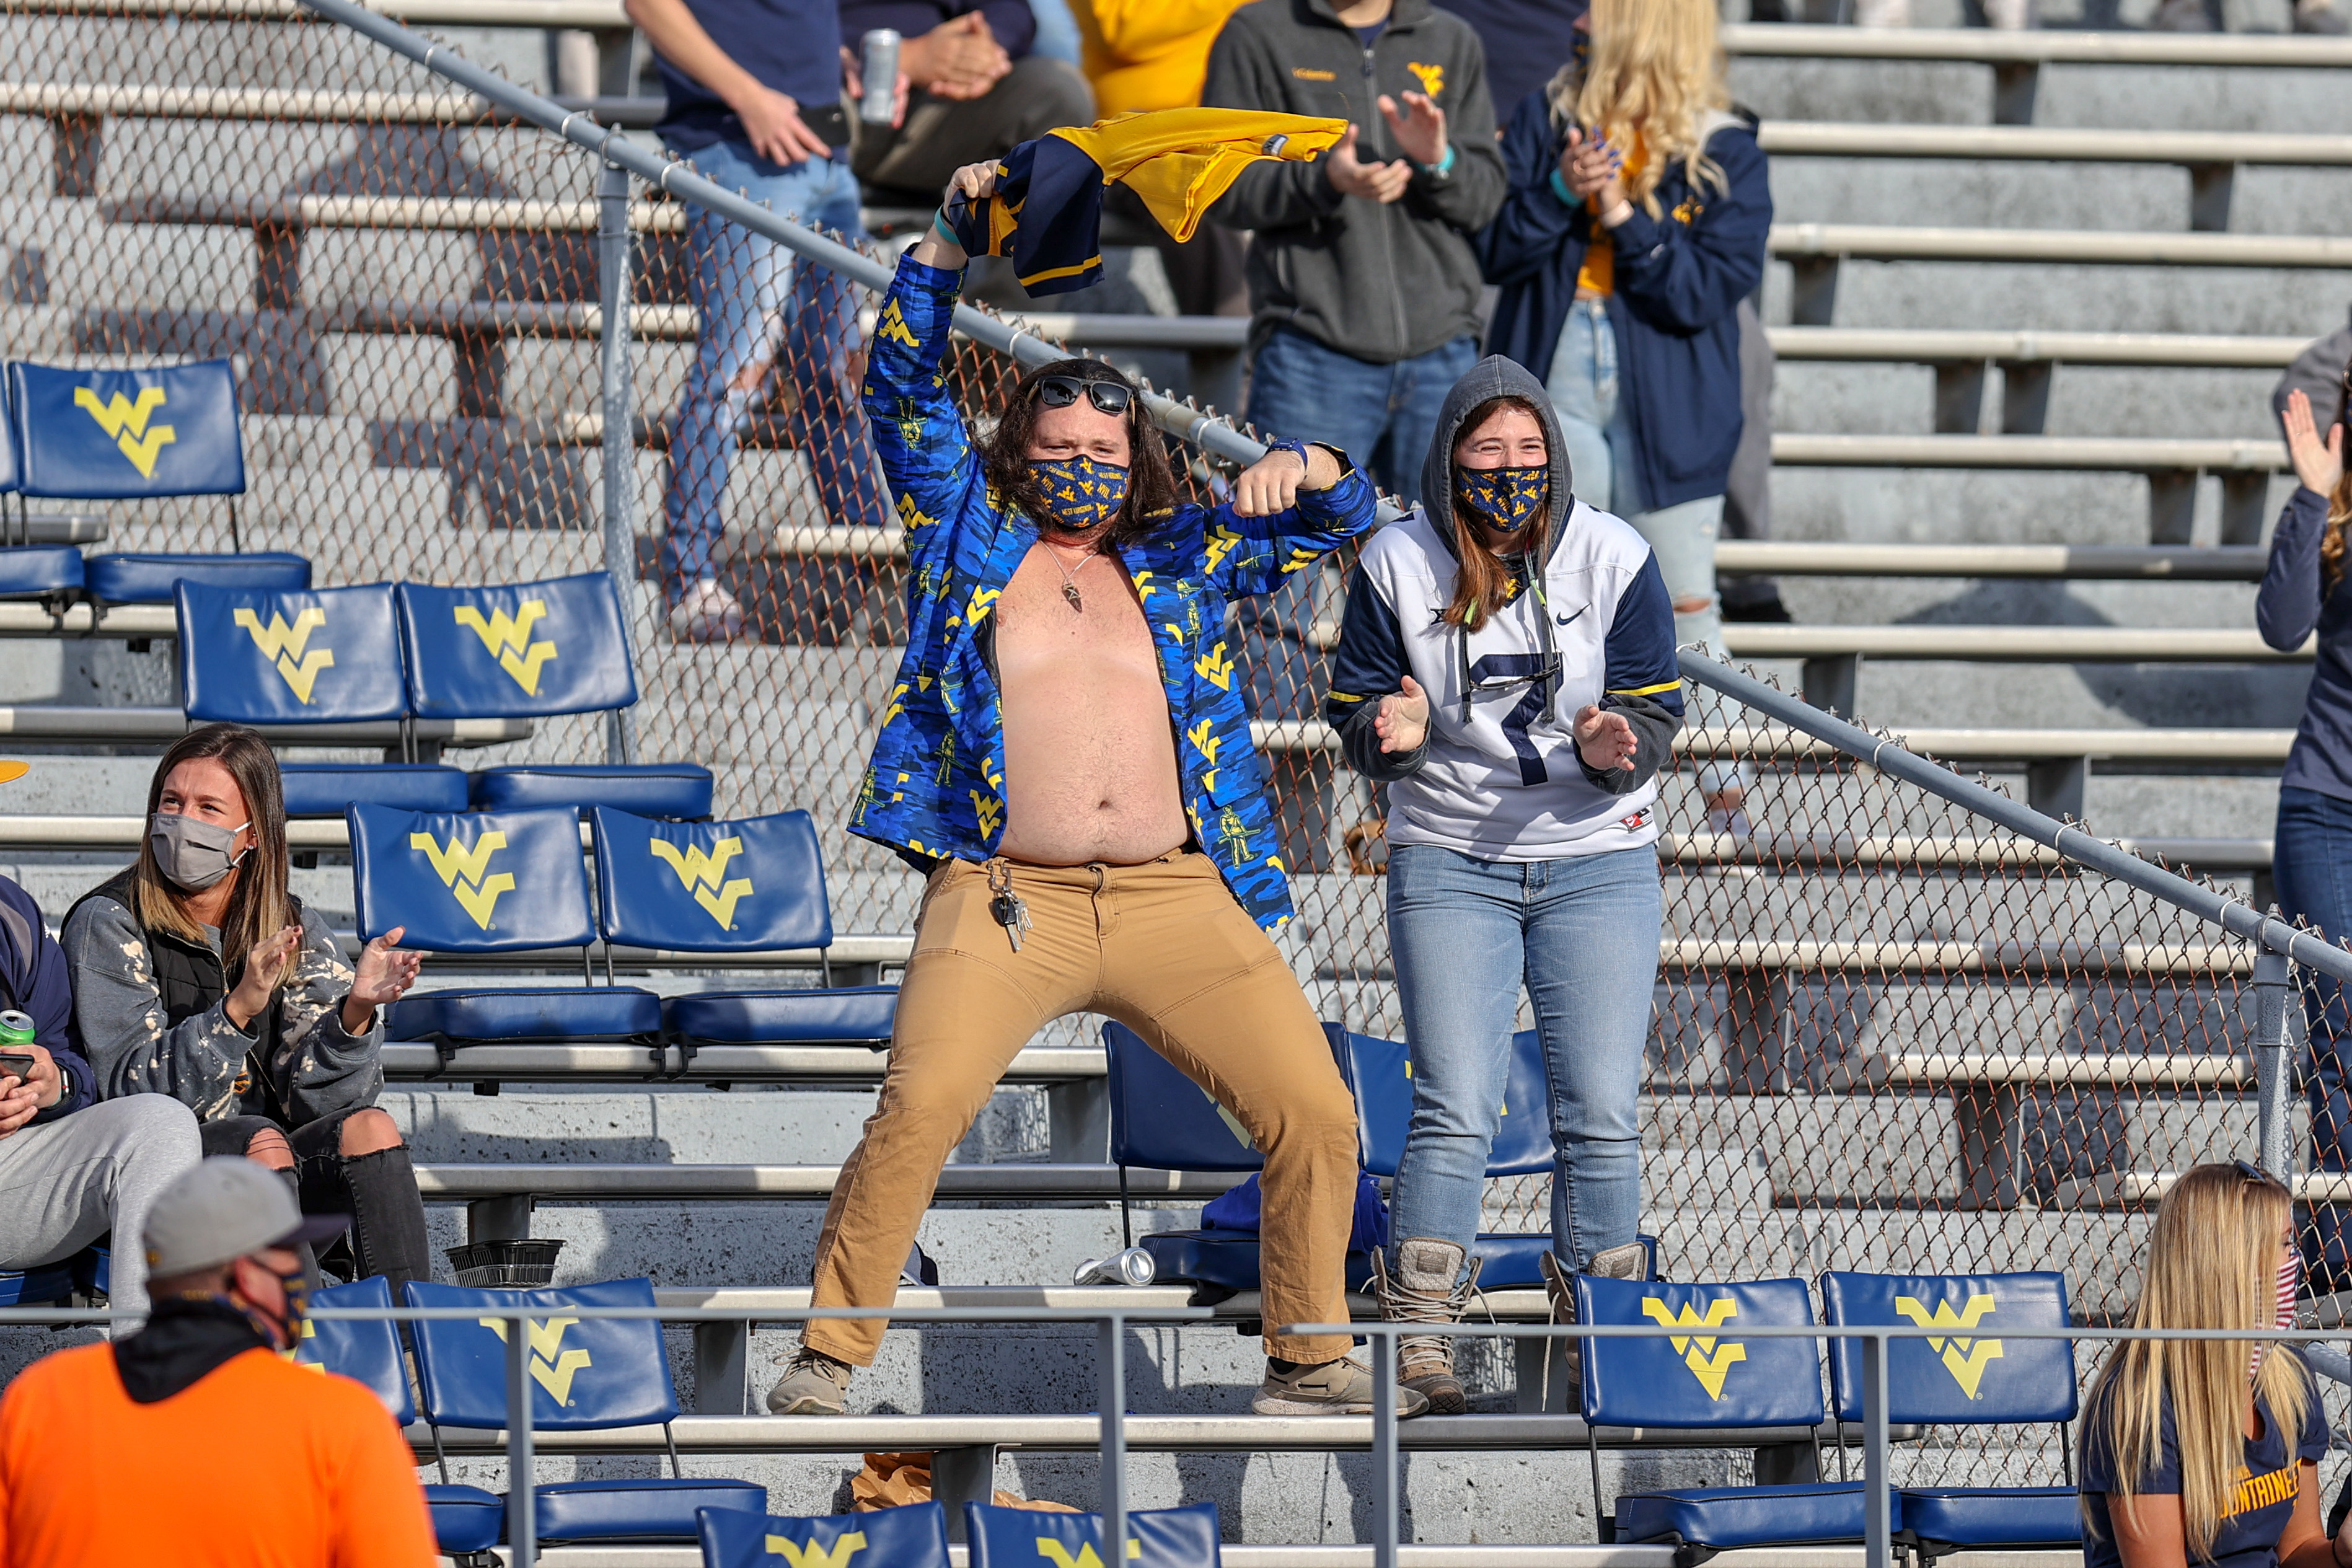 COLLEGE FOOTBALL: NOV 14 TCU at West Virginia